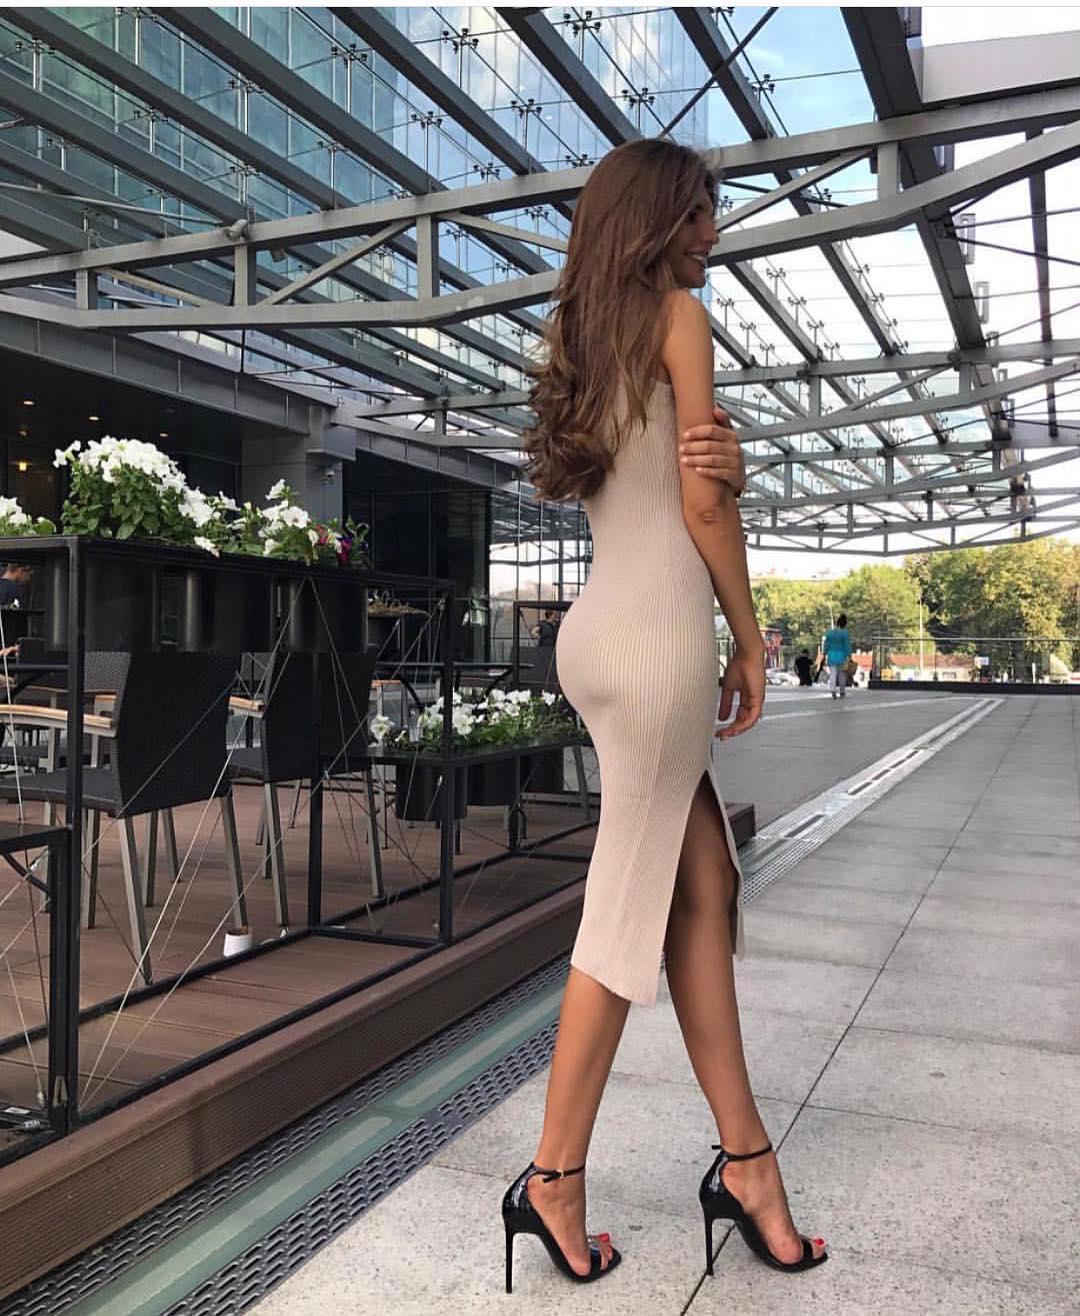 Skintight Knitted Beige Dress For Summer 2020